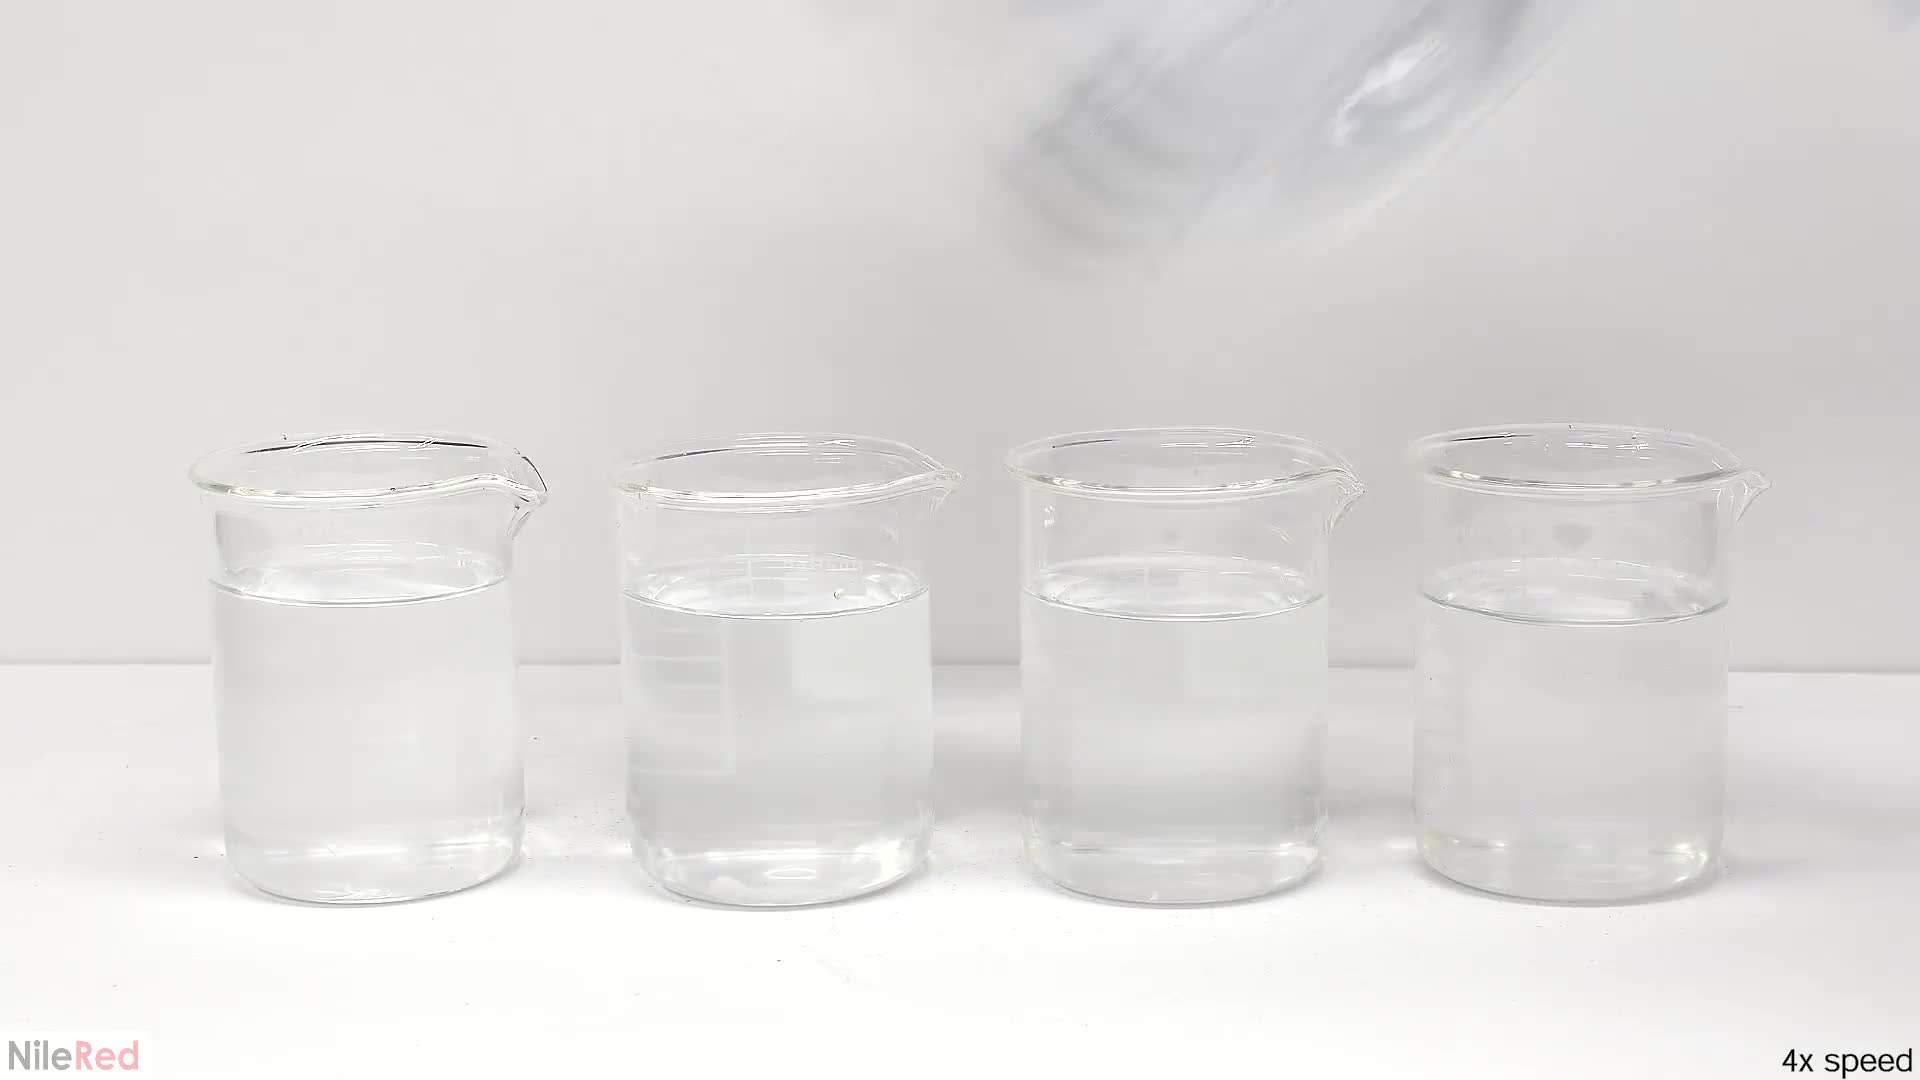 chemicalreactiongifs, chemistry, nilered, The oscillating Briggs-Rauscher reaction GIFs